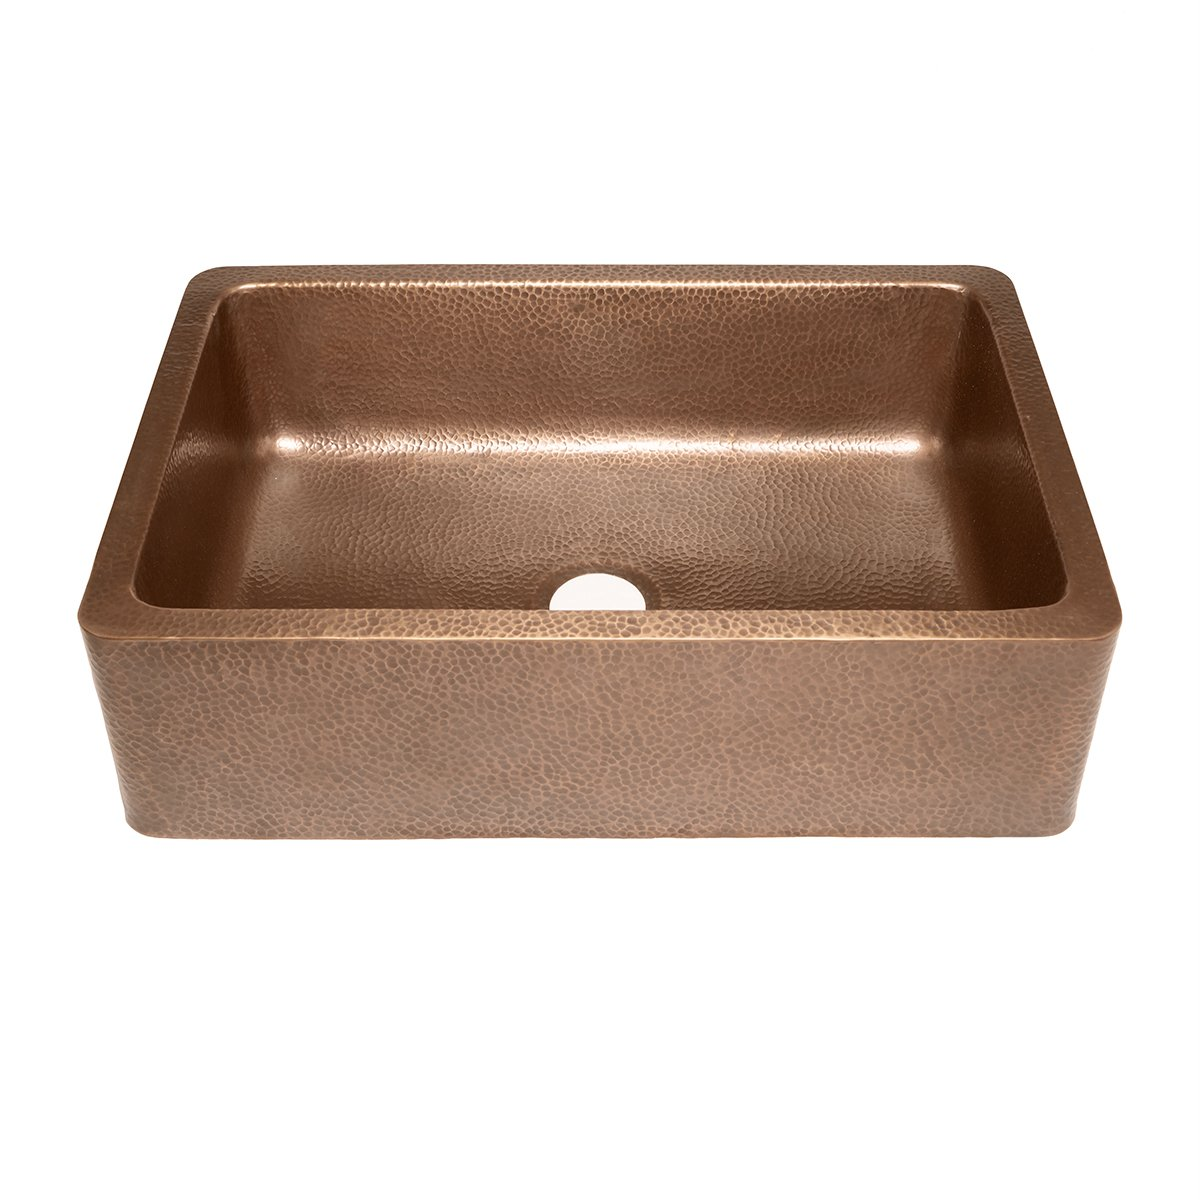 adams farmhouse 33 inches - Copper Kitchen Sinks Reviews